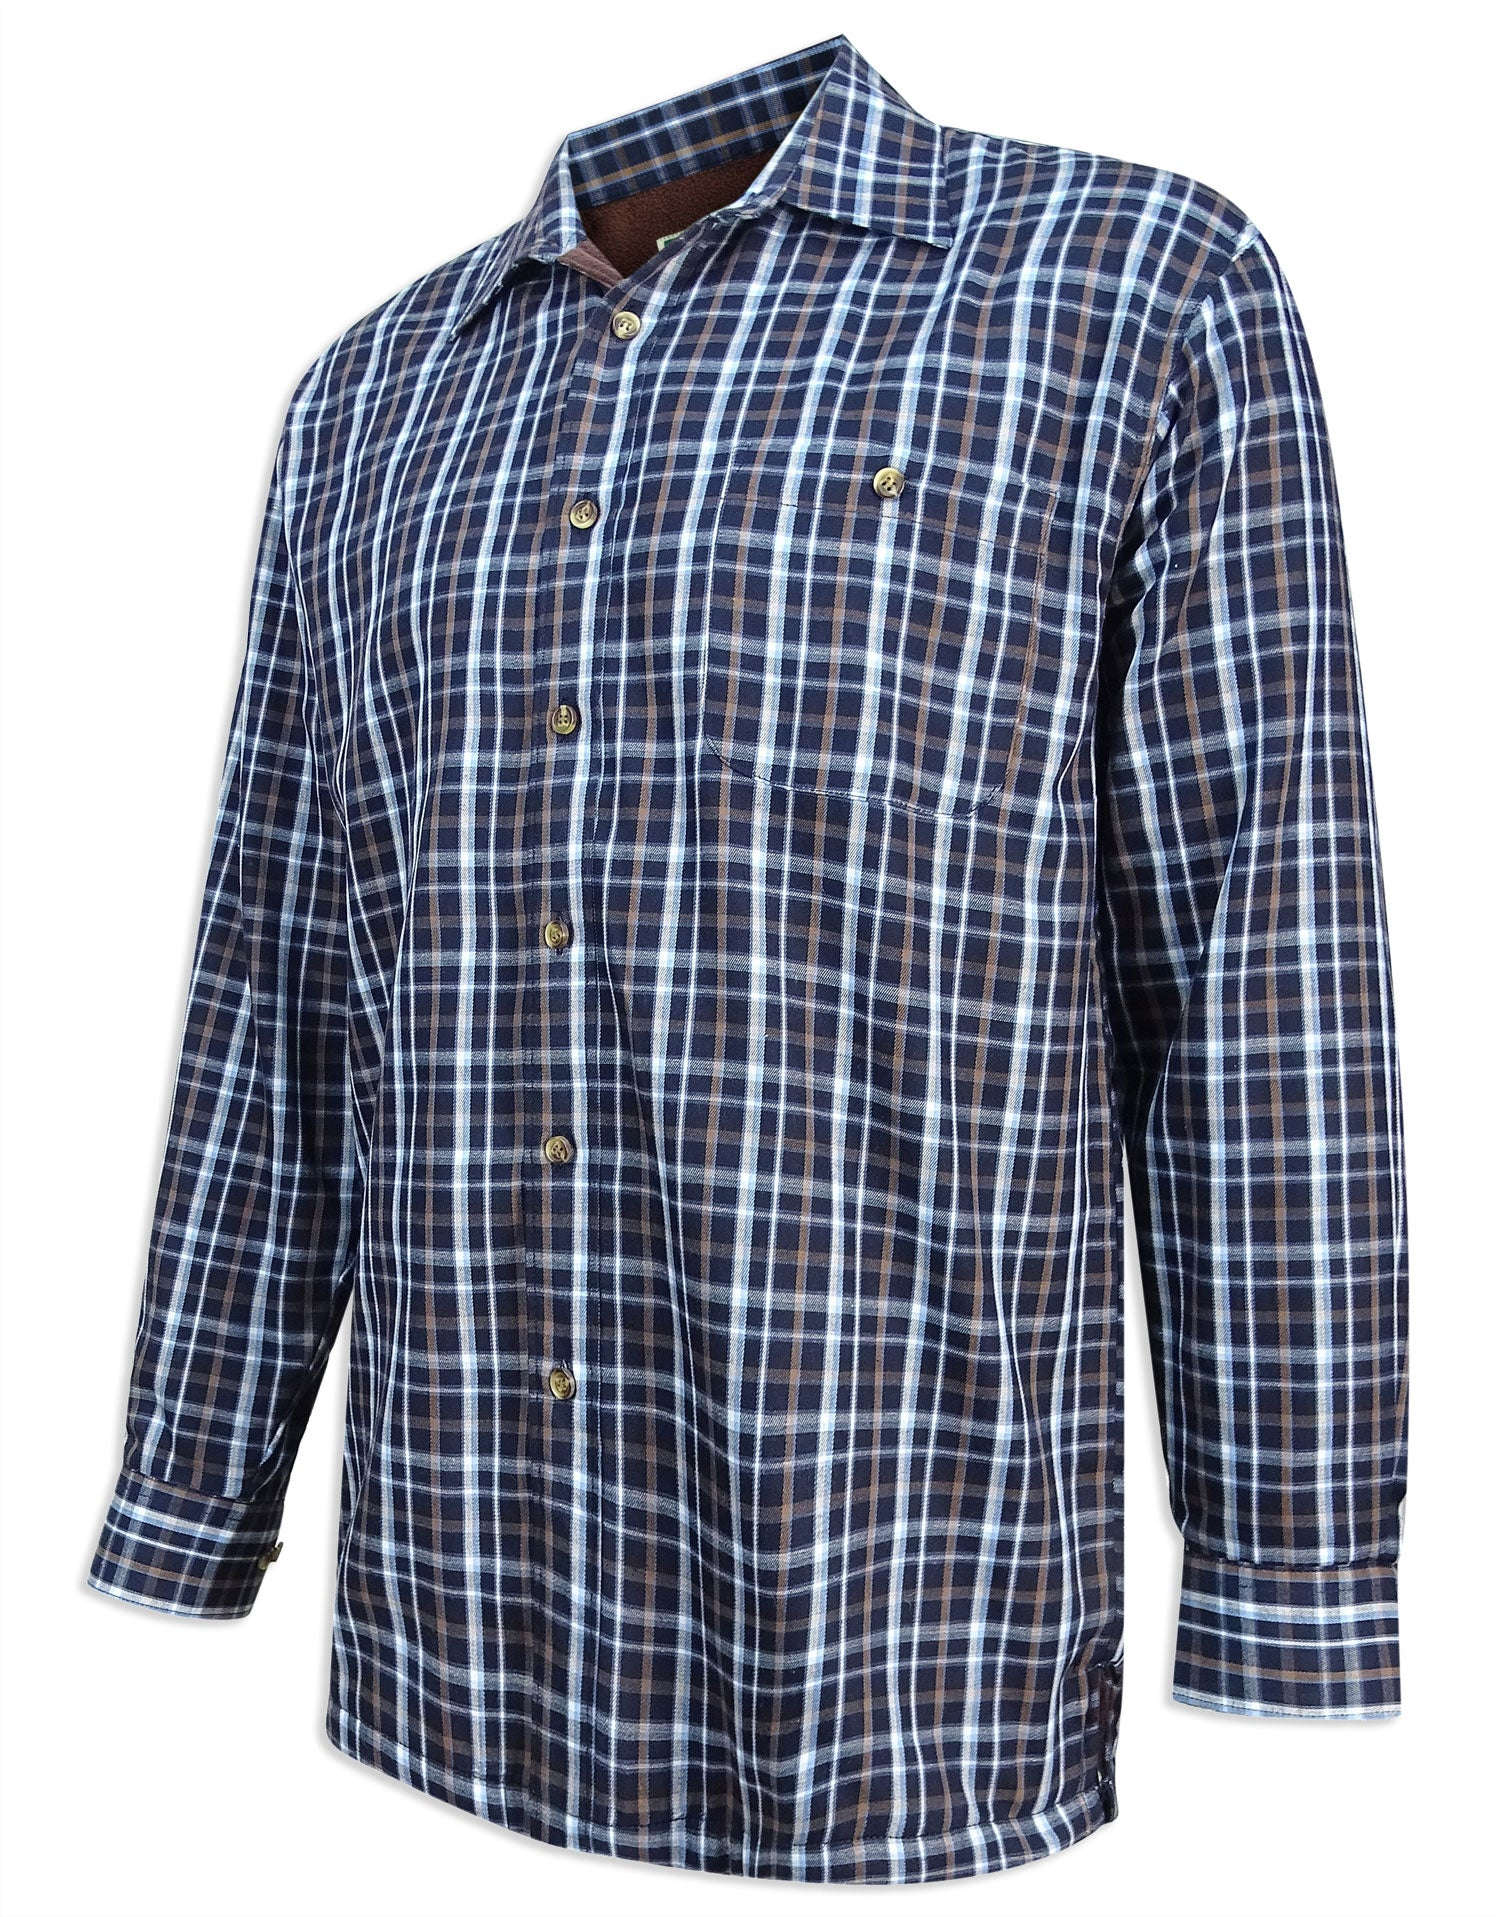 Hoggs Bark Micro Fleece Lined Shirt | Navy tartan